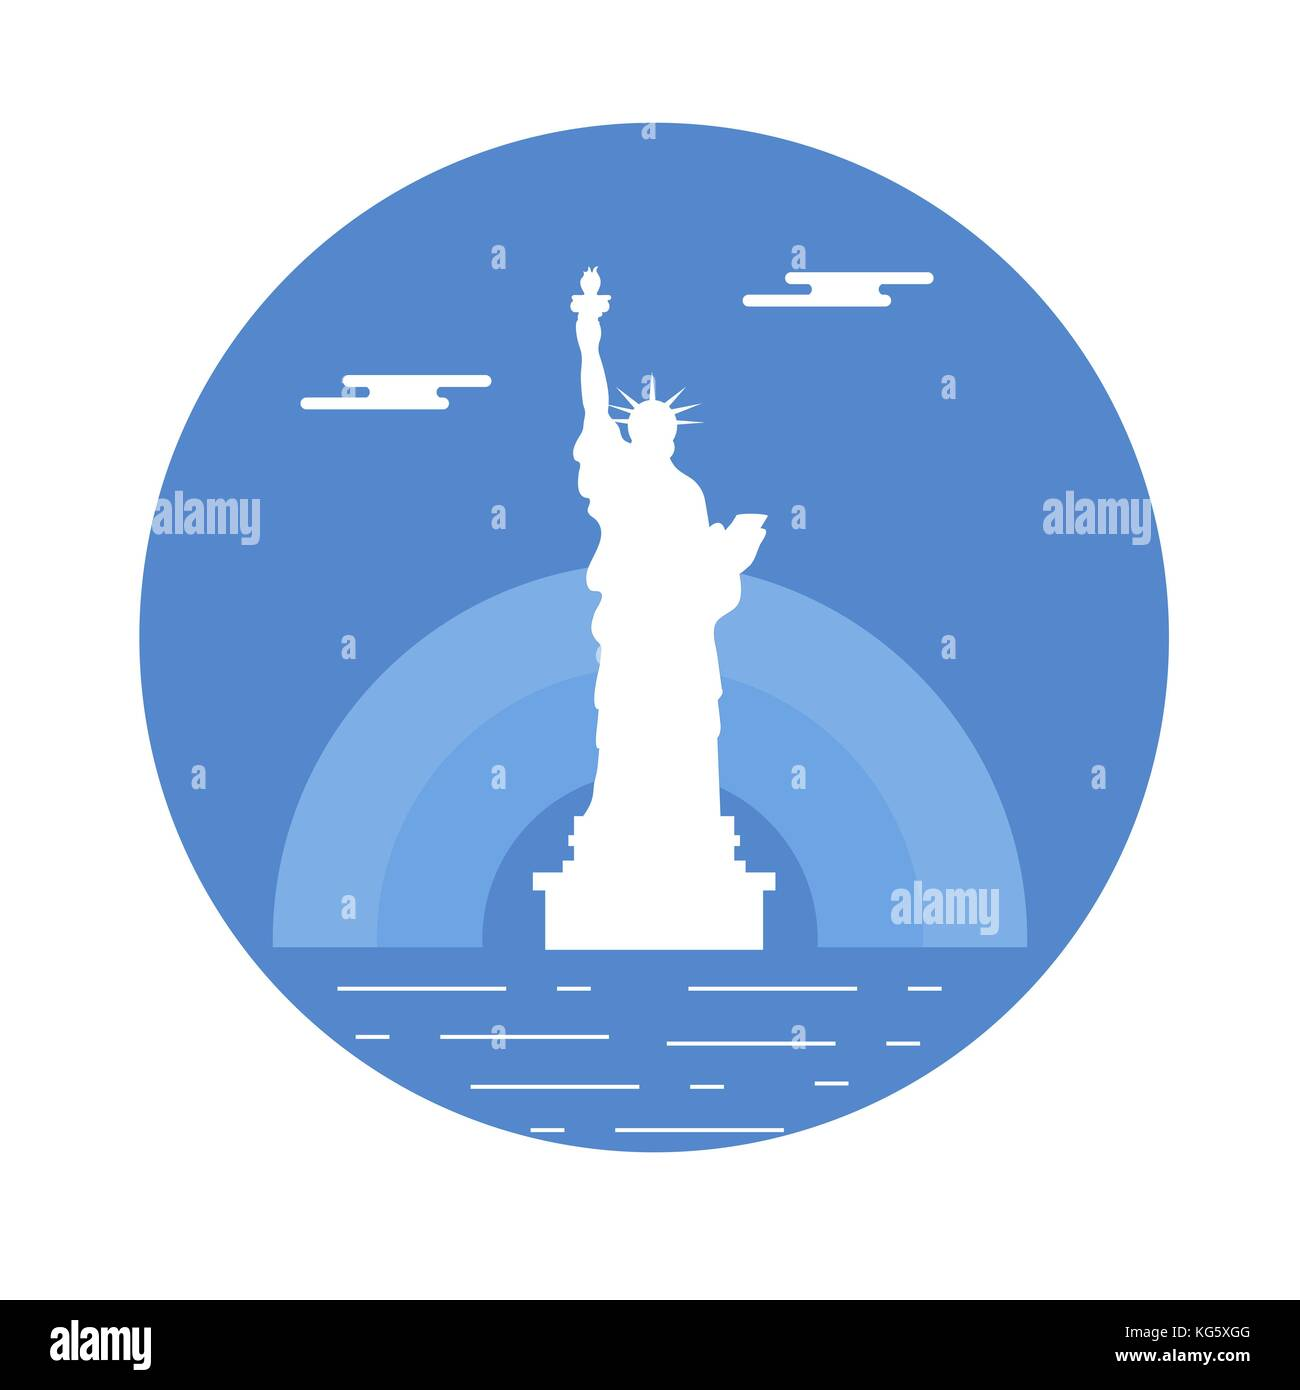 Statue of liberty sun and clouds new york landmark american statue of liberty sun and clouds new york landmark american symbols buycottarizona Image collections